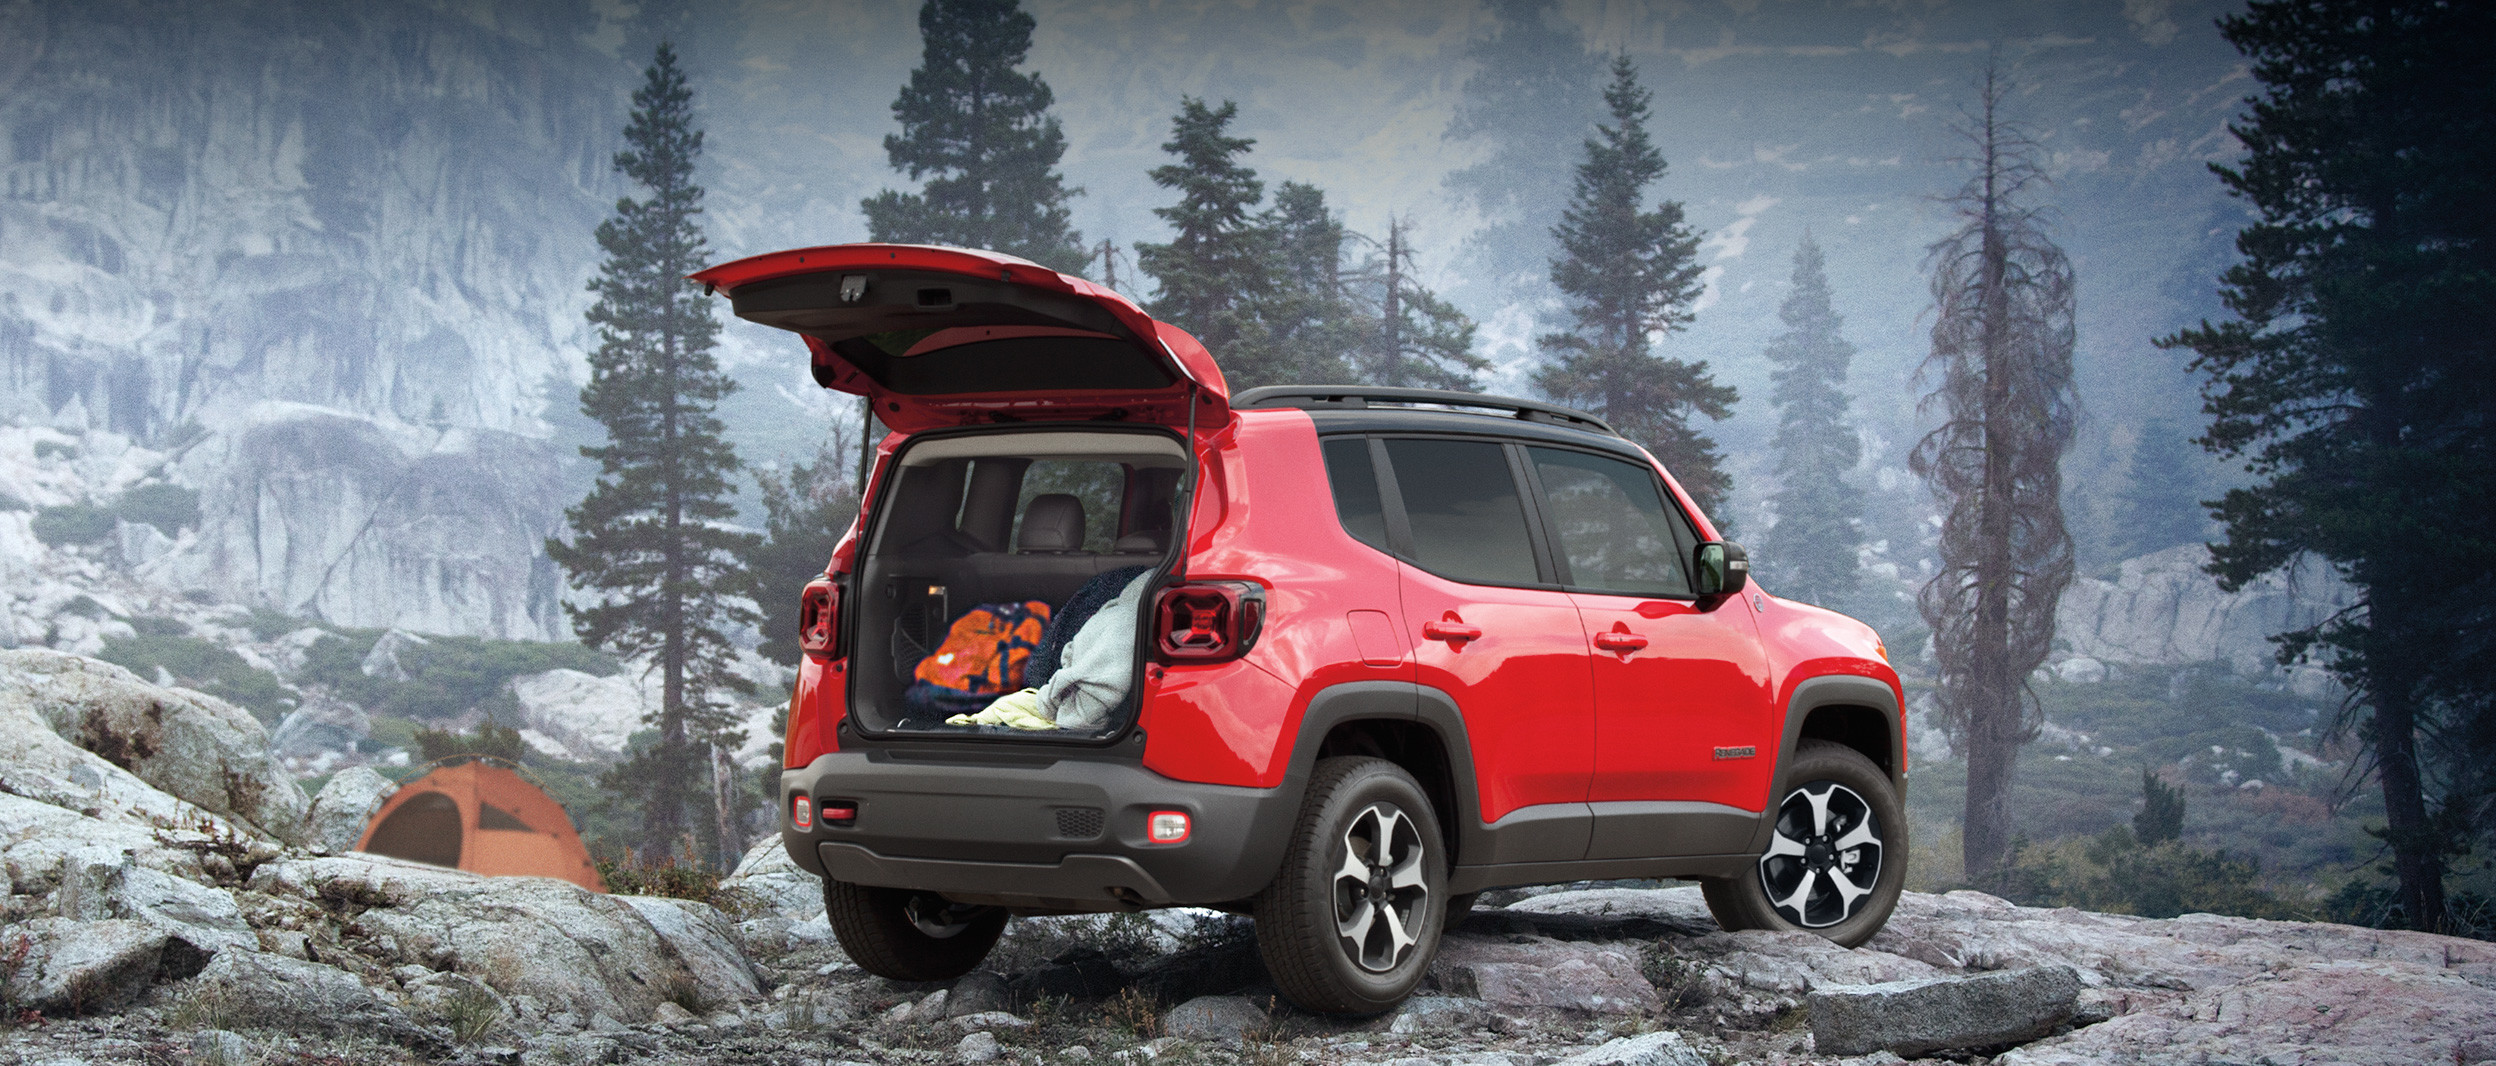 Rear view of the 2020 Jeep Renegade in red parked in a rocky forest in the mountains, while a man cooks on a camping stove nearby